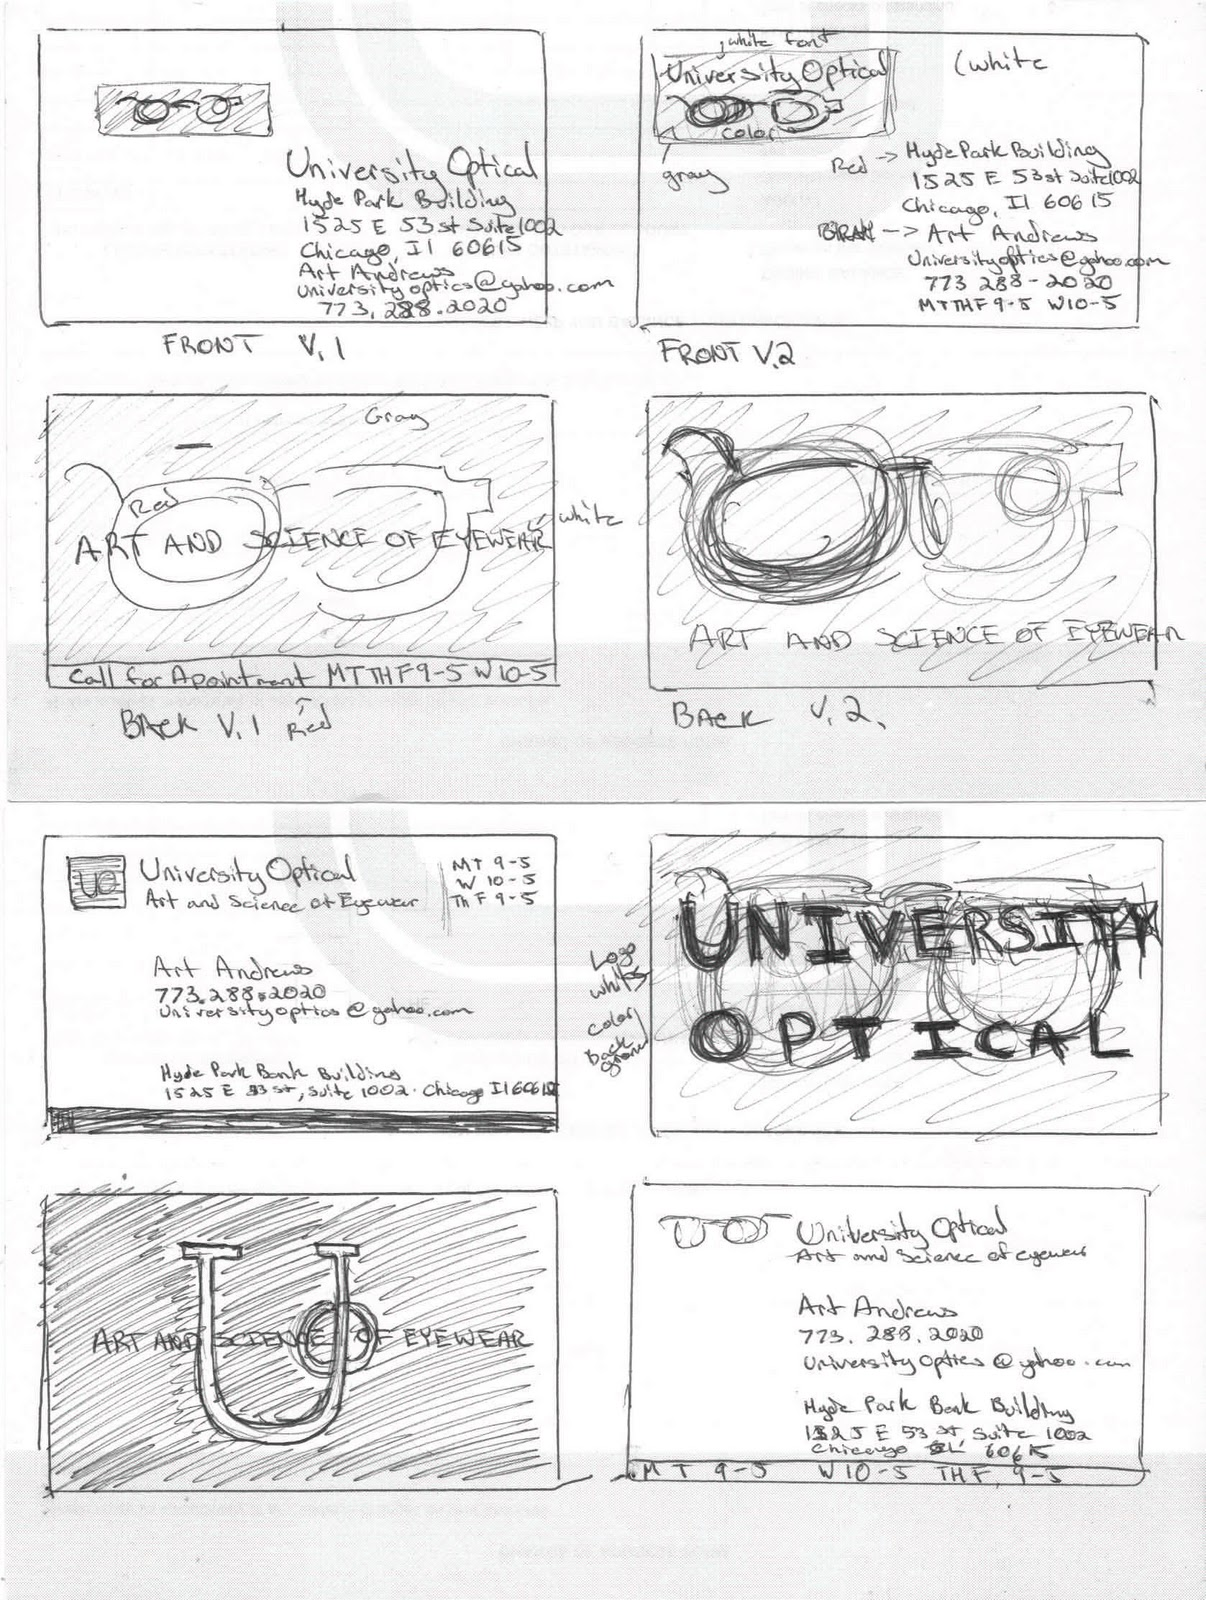 Sketch ideas for university optical business cards jazmin giron sketch ideas for university optical business cards colourmoves